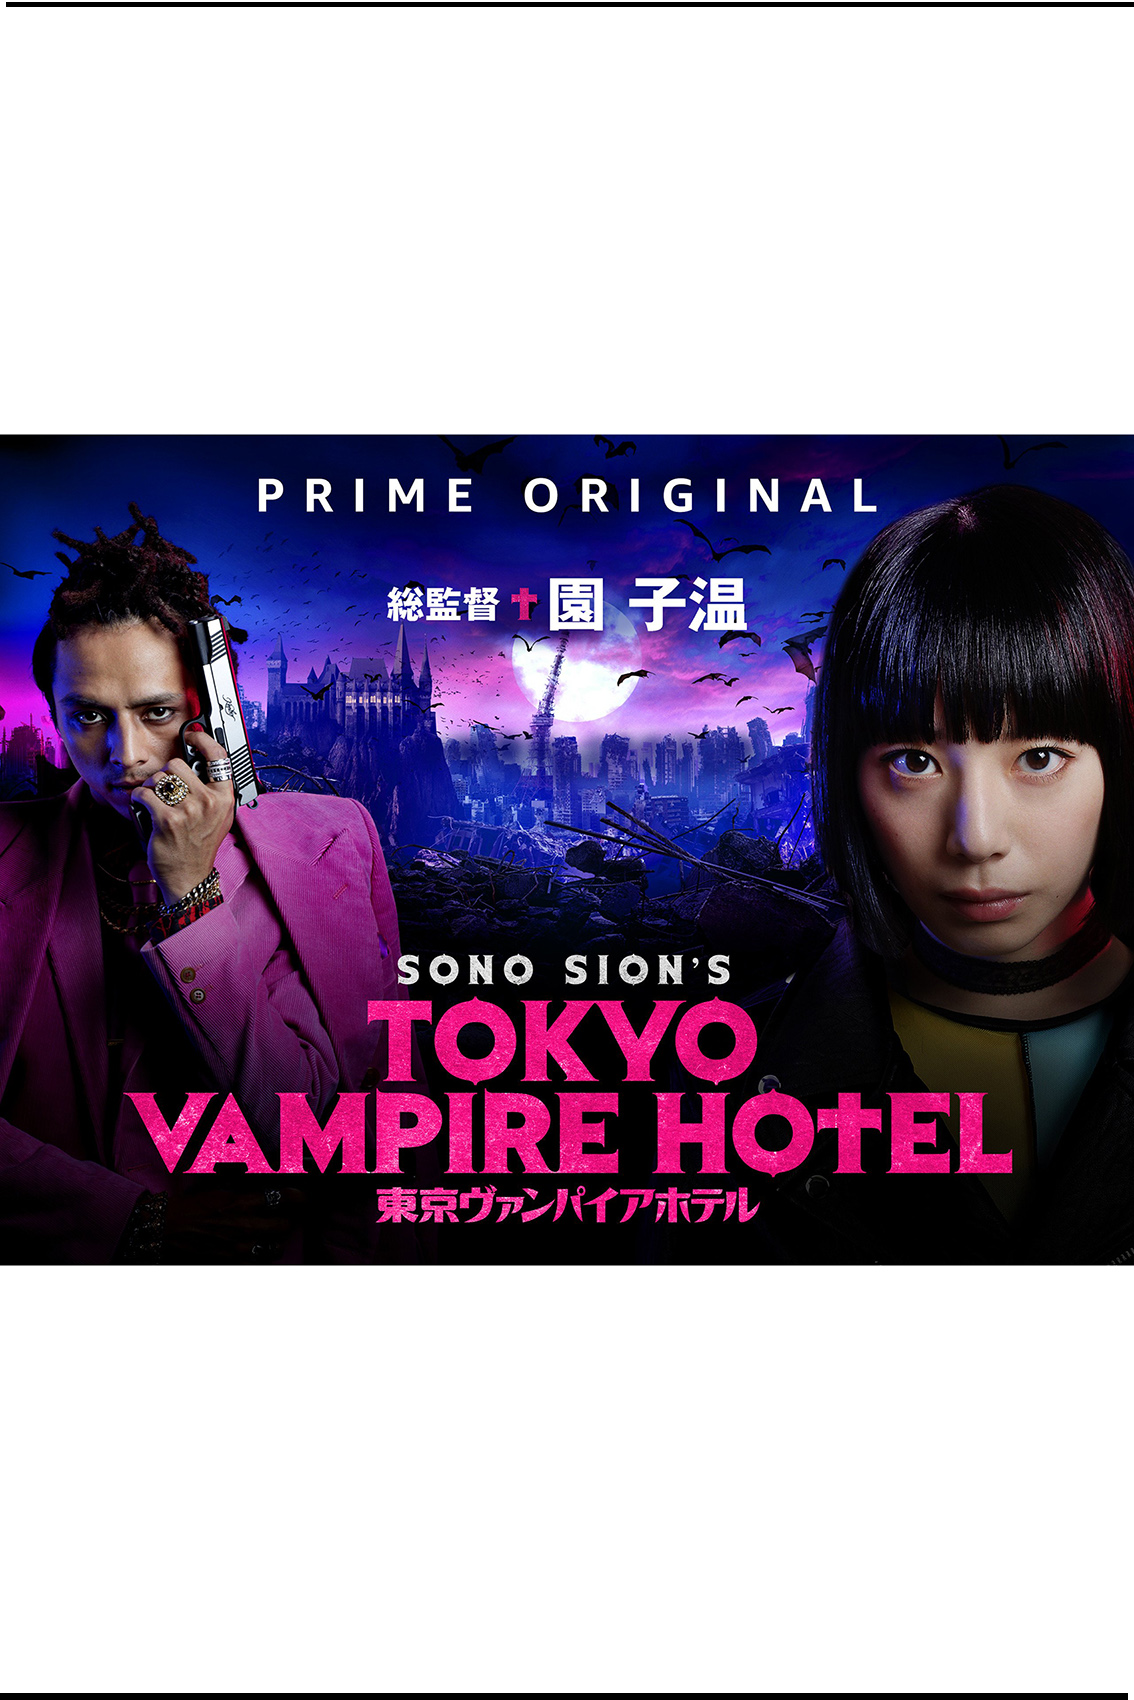 Tokyo Vampire Hotel [2017 Japan Series] 9 episodes END (2) Drama, Horror, Comedy